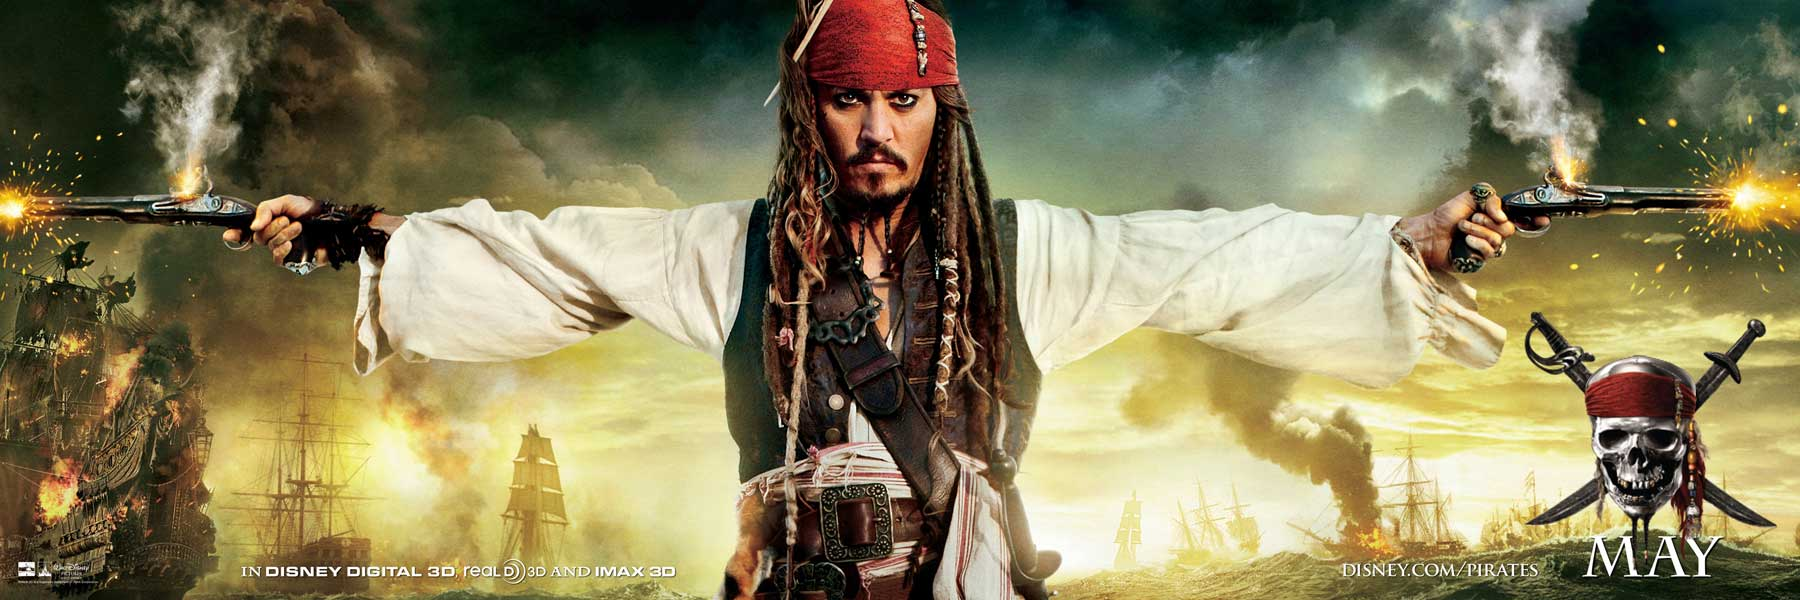 johnny depp 'sponged' from keith richards for 'pirates of the